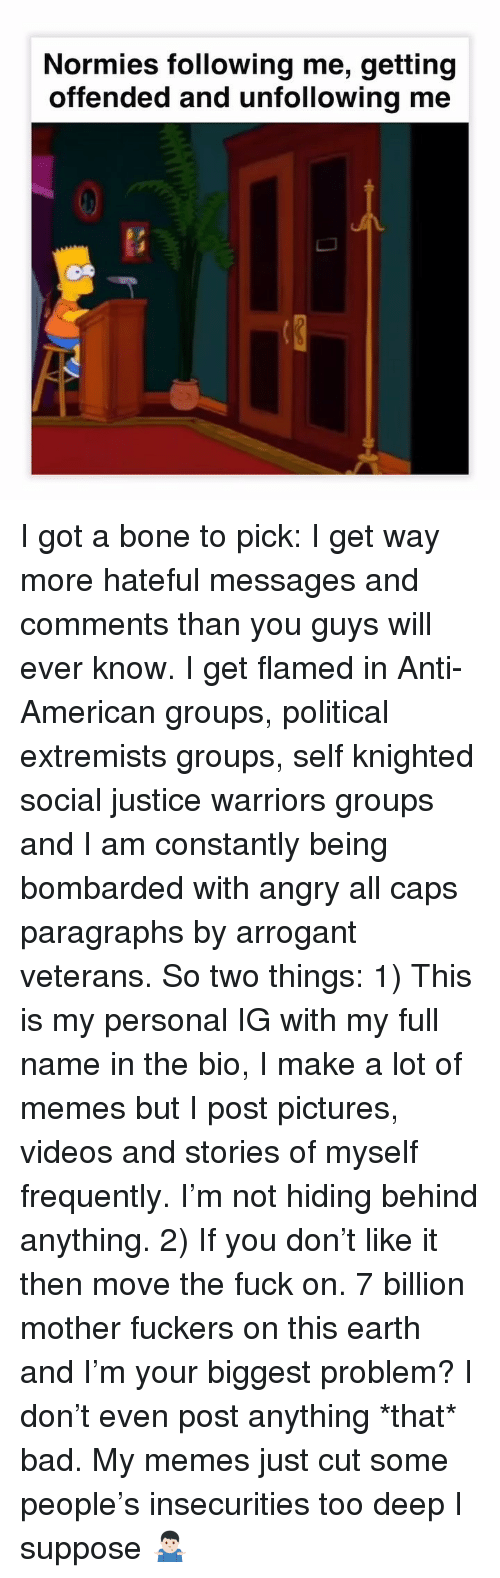 Paragraphs: Normies following me, getting  offended and unfollowing me  0 I got a bone to pick: I get way more hateful messages and comments than you guys will ever know. I get flamed in Anti-American groups, political extremists groups, self knighted social justice warriors groups and I am constantly being bombarded with angry all caps paragraphs by arrogant veterans. So two things: 1) This is my personal IG with my full name in the bio, I make a lot of memes but I post pictures, videos and stories of myself frequently. I'm not hiding behind anything. 2) If you don't like it then move the fuck on. 7 billion mother fuckers on this earth and I'm your biggest problem? I don't even post anything *that* bad. My memes just cut some people's insecurities too deep I suppose 🤷🏻‍♂️